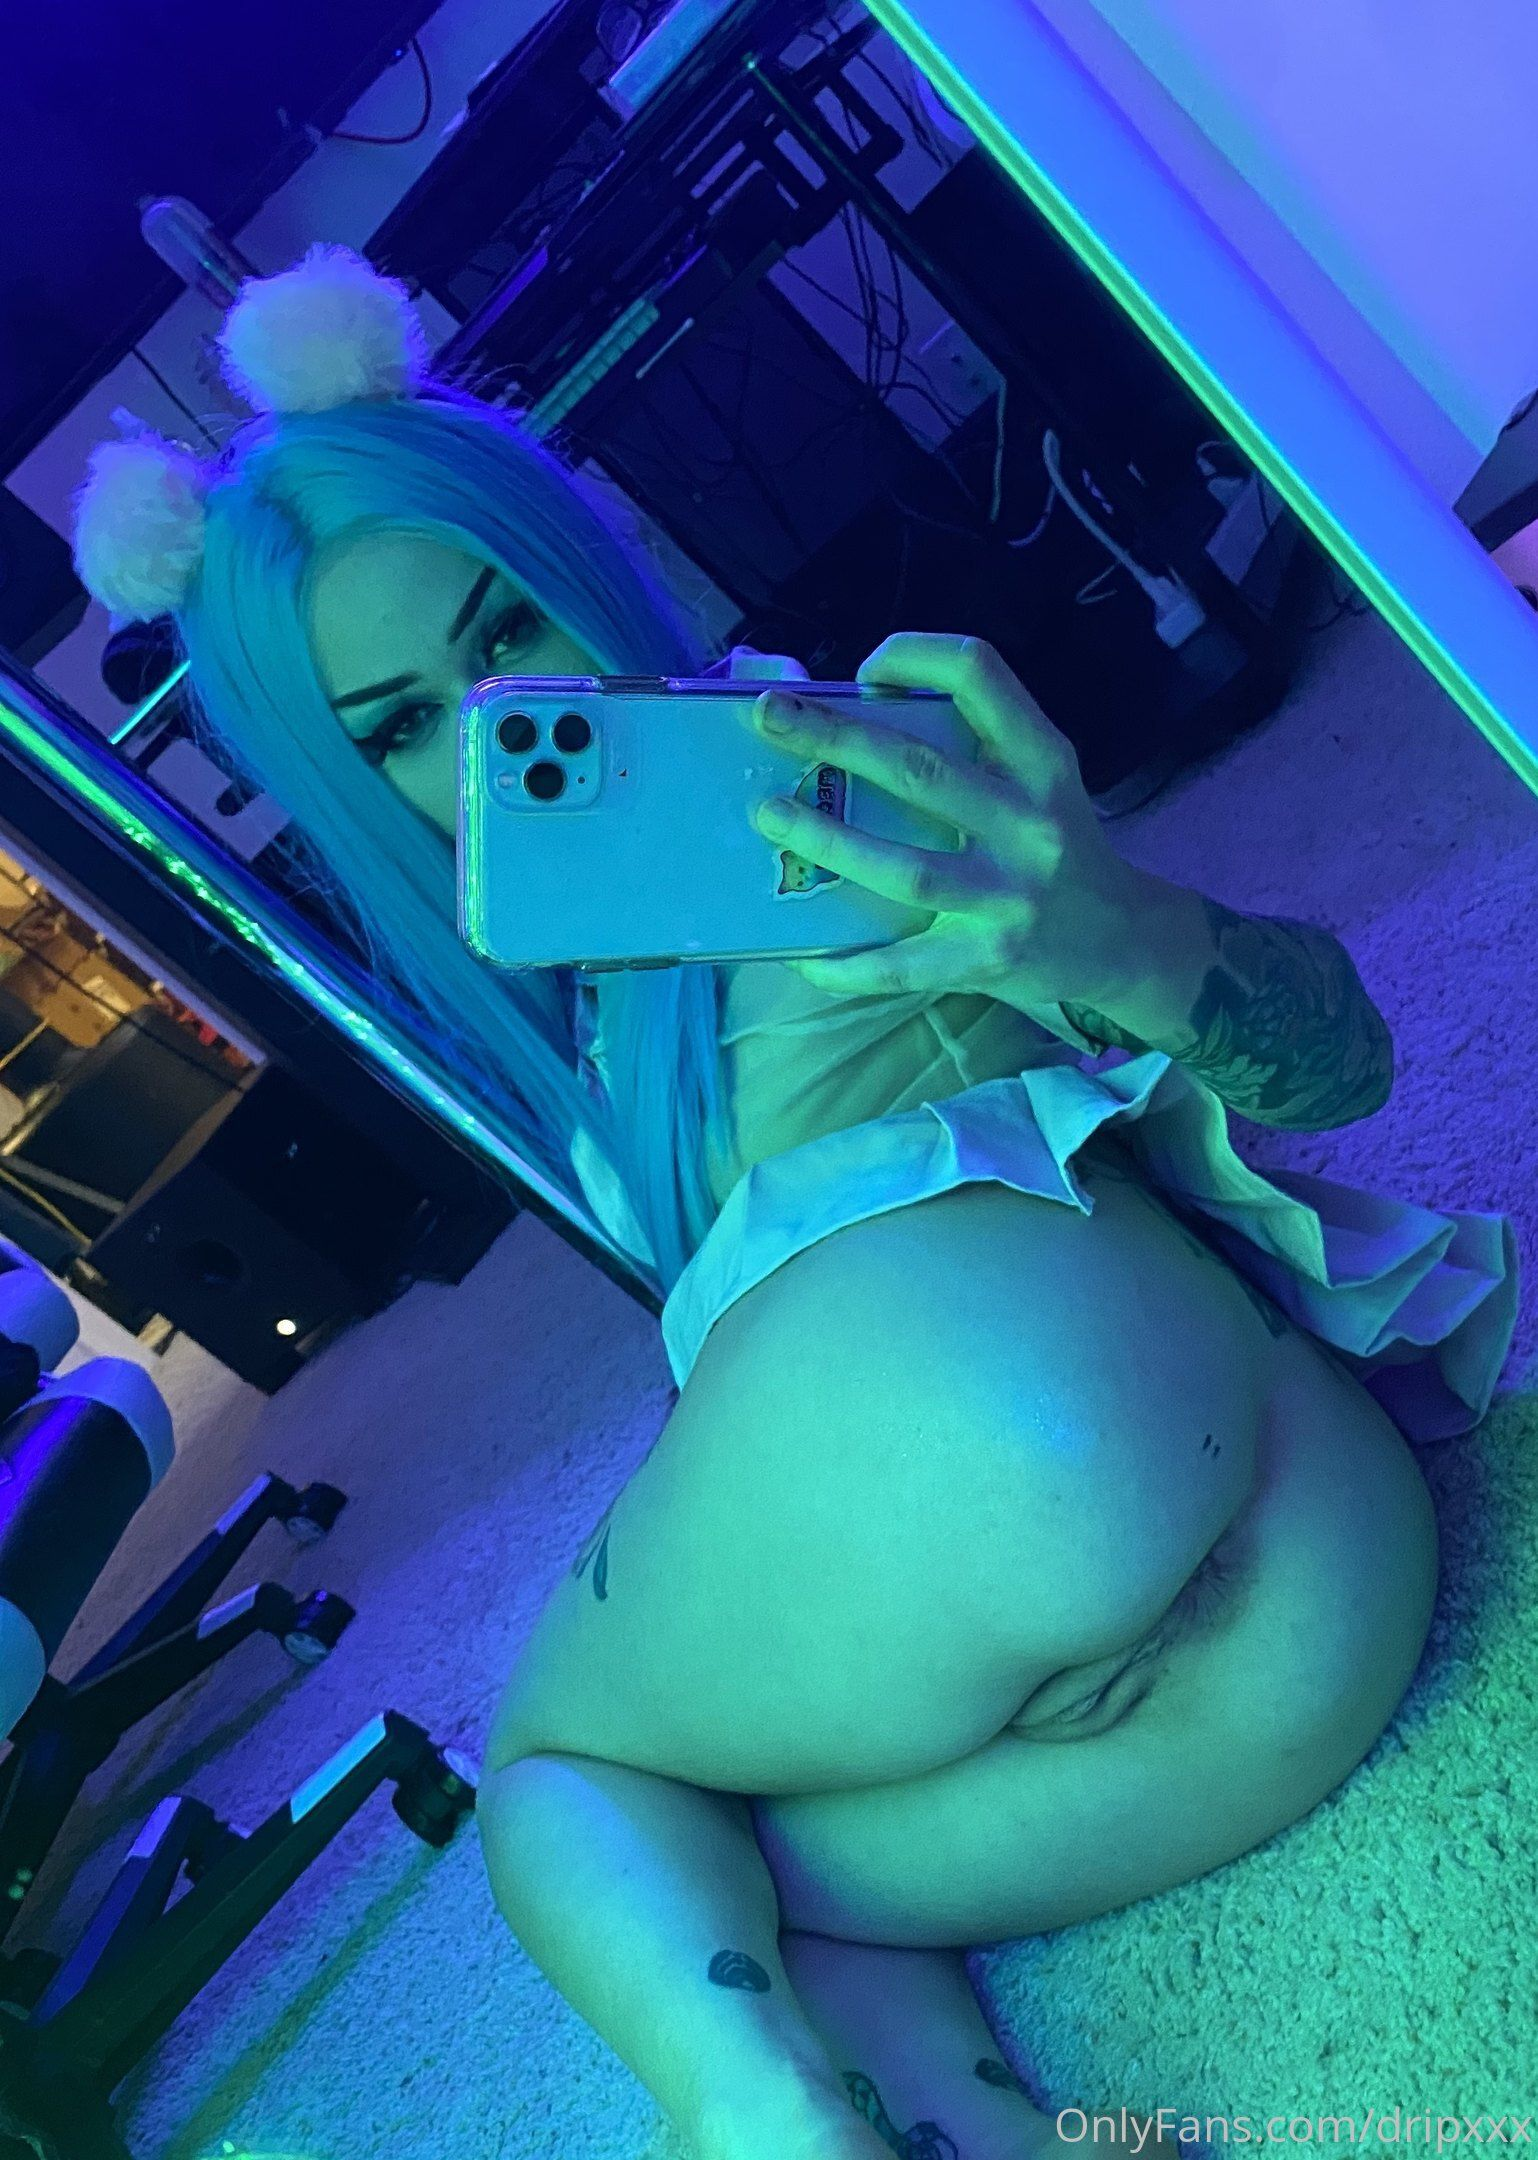 Dripxxx Nude Onlyfans Photos 0014